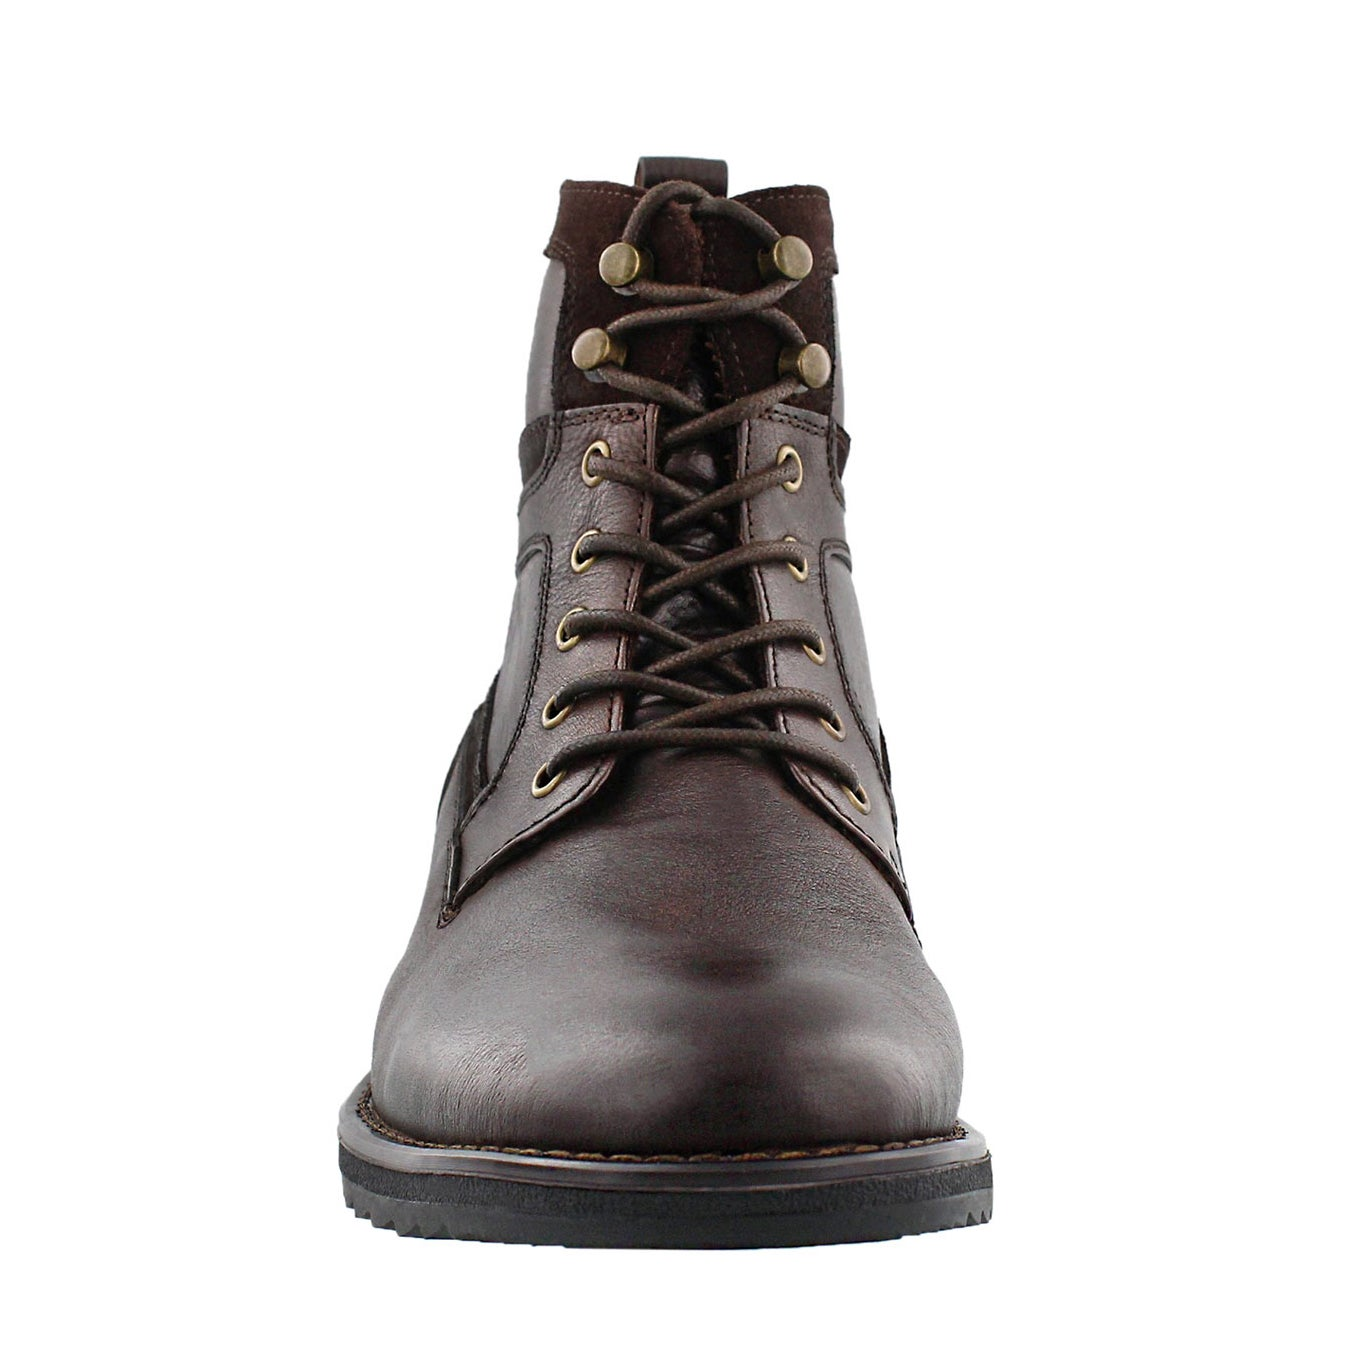 Mns Maldini brown leather ankle boot